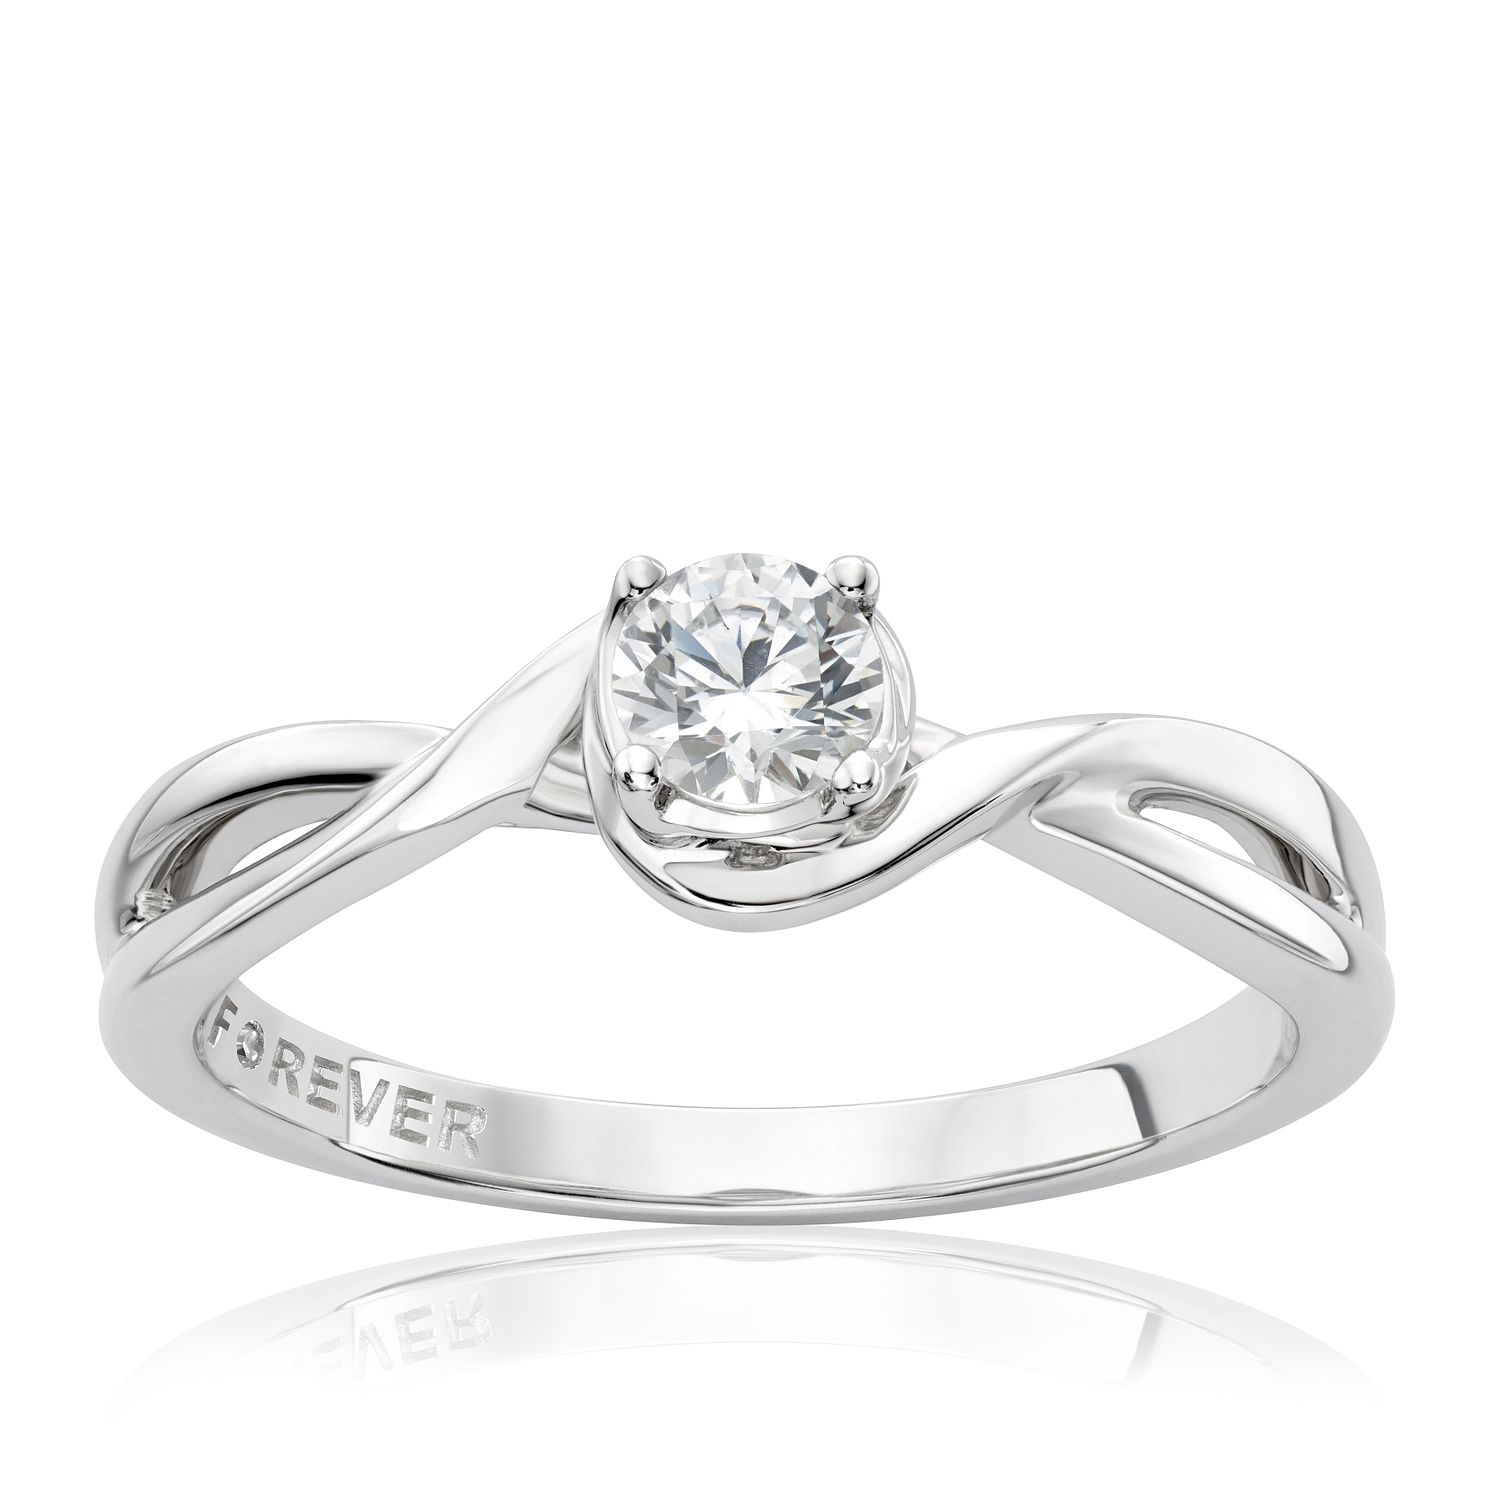 engagement well platinum com diamonds wedding awesome patsveg of rings expensive cheap as diamond